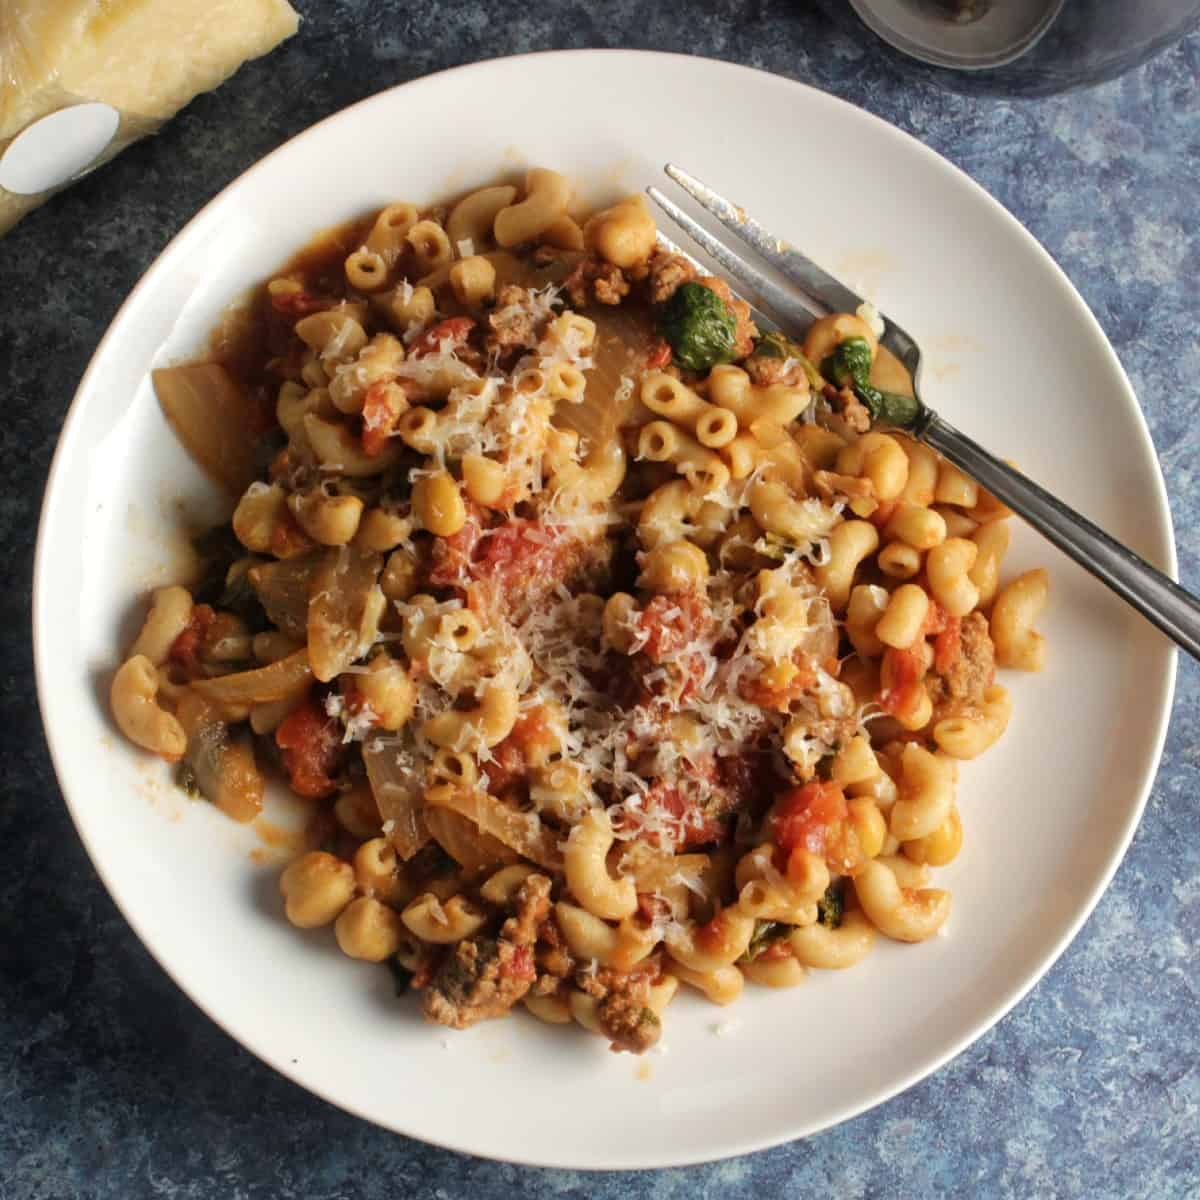 pasta sauce with ground beef and chickpeas on a plate.